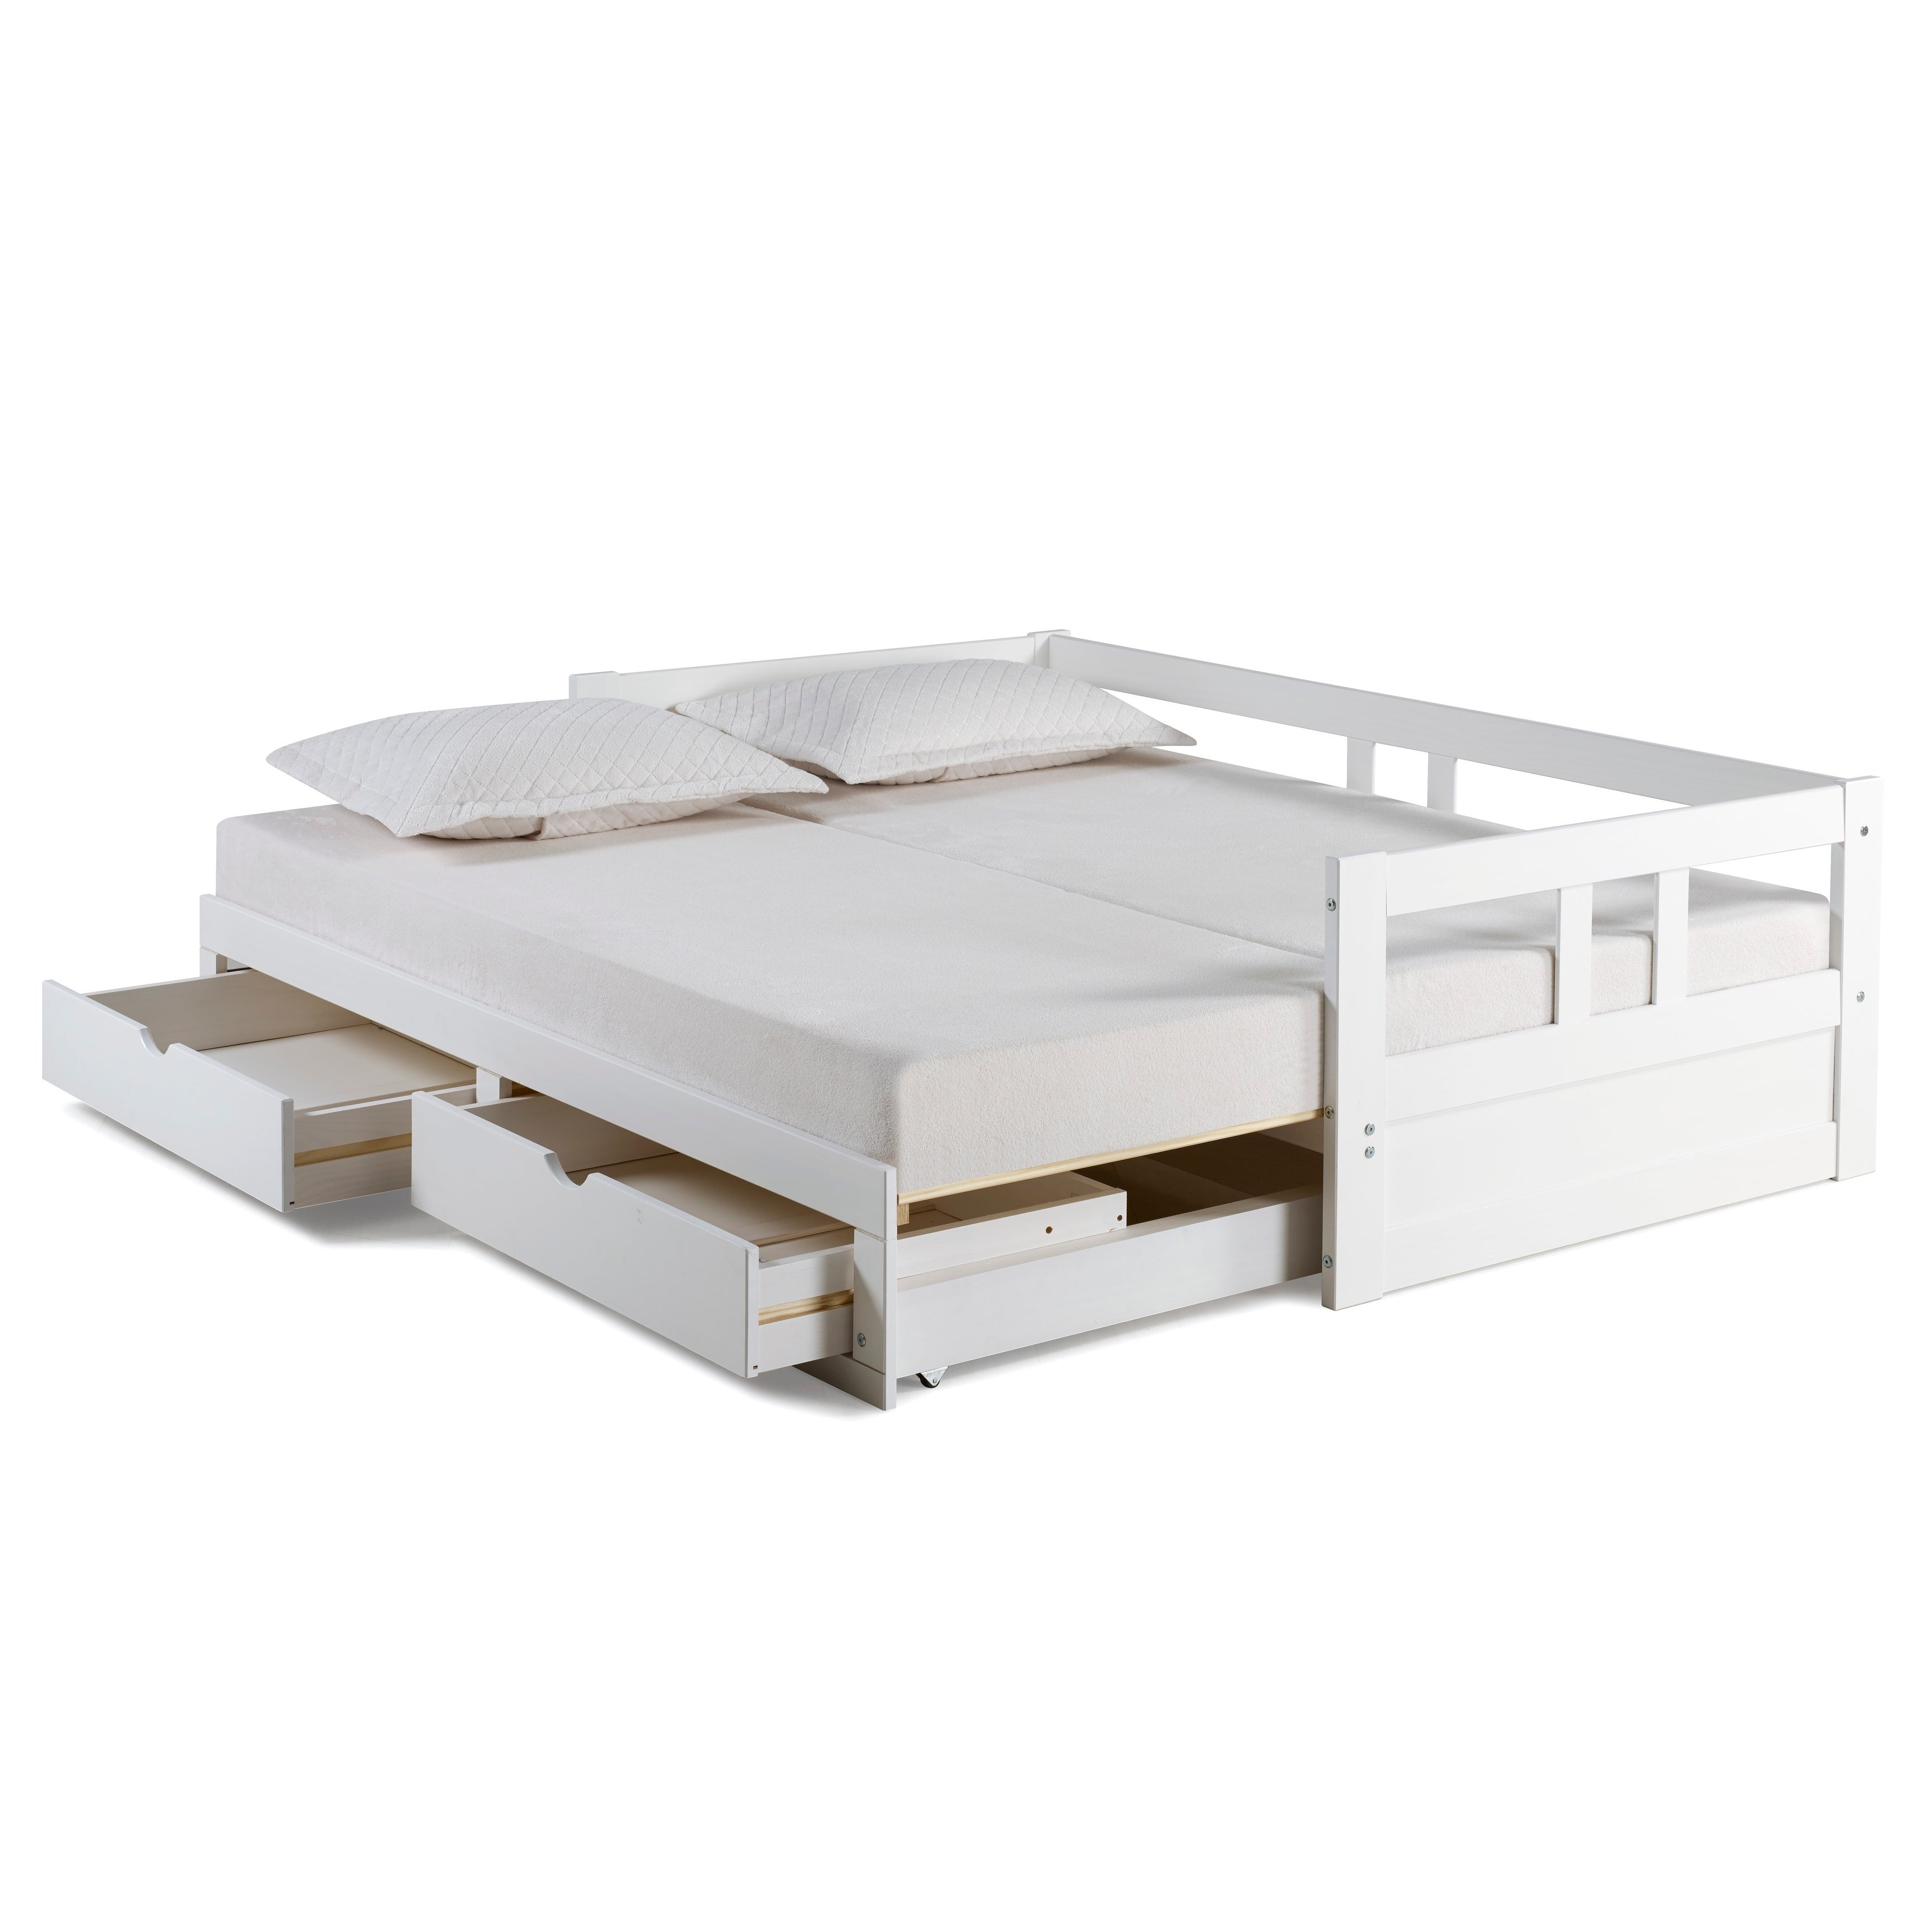 Melody Twin To King Trundle Daybed With Storage Drawers White Free Shipping Today 18105350